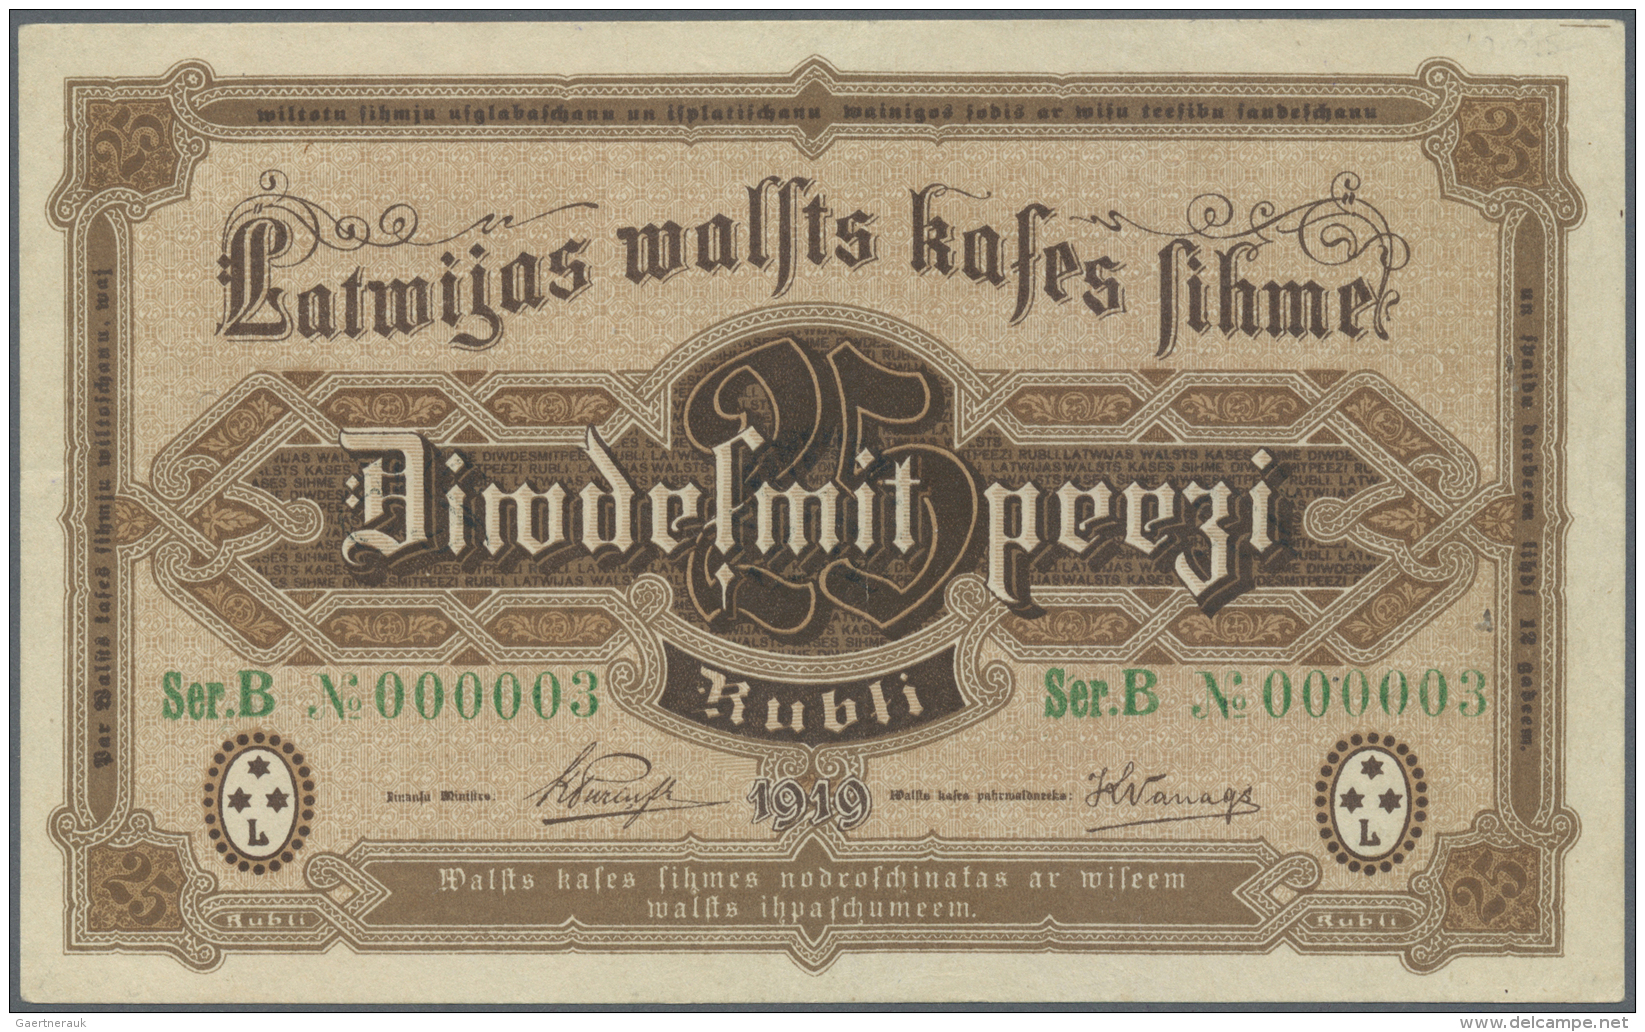 Latvia /Lettland: Highly Rare 25 Rubli 1919 P. 5d Series B With Low Serial Number #000003 In Green Color, Sign. Purins, - Latvia